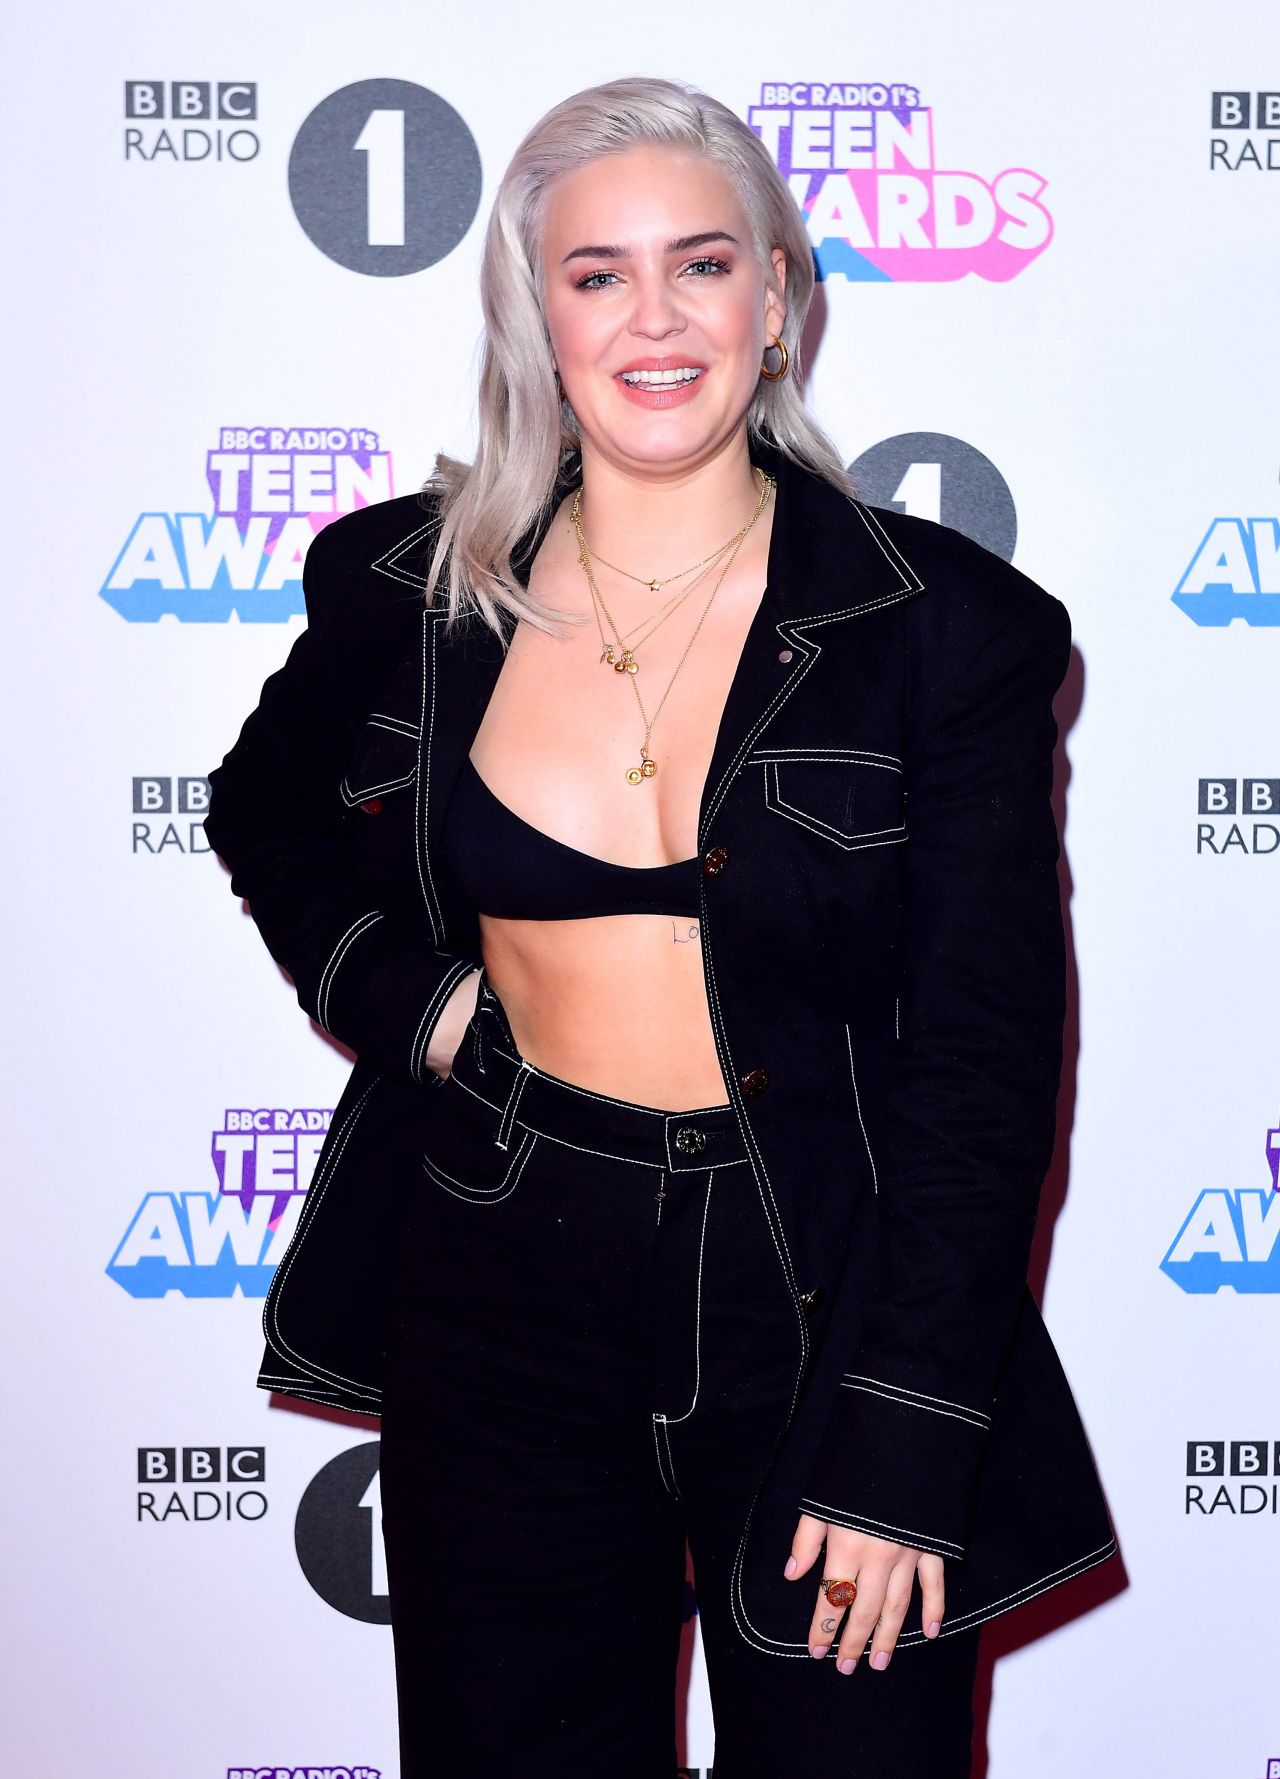 Anne Marie Bbc Radio 1 Teen Awards 2017 In London